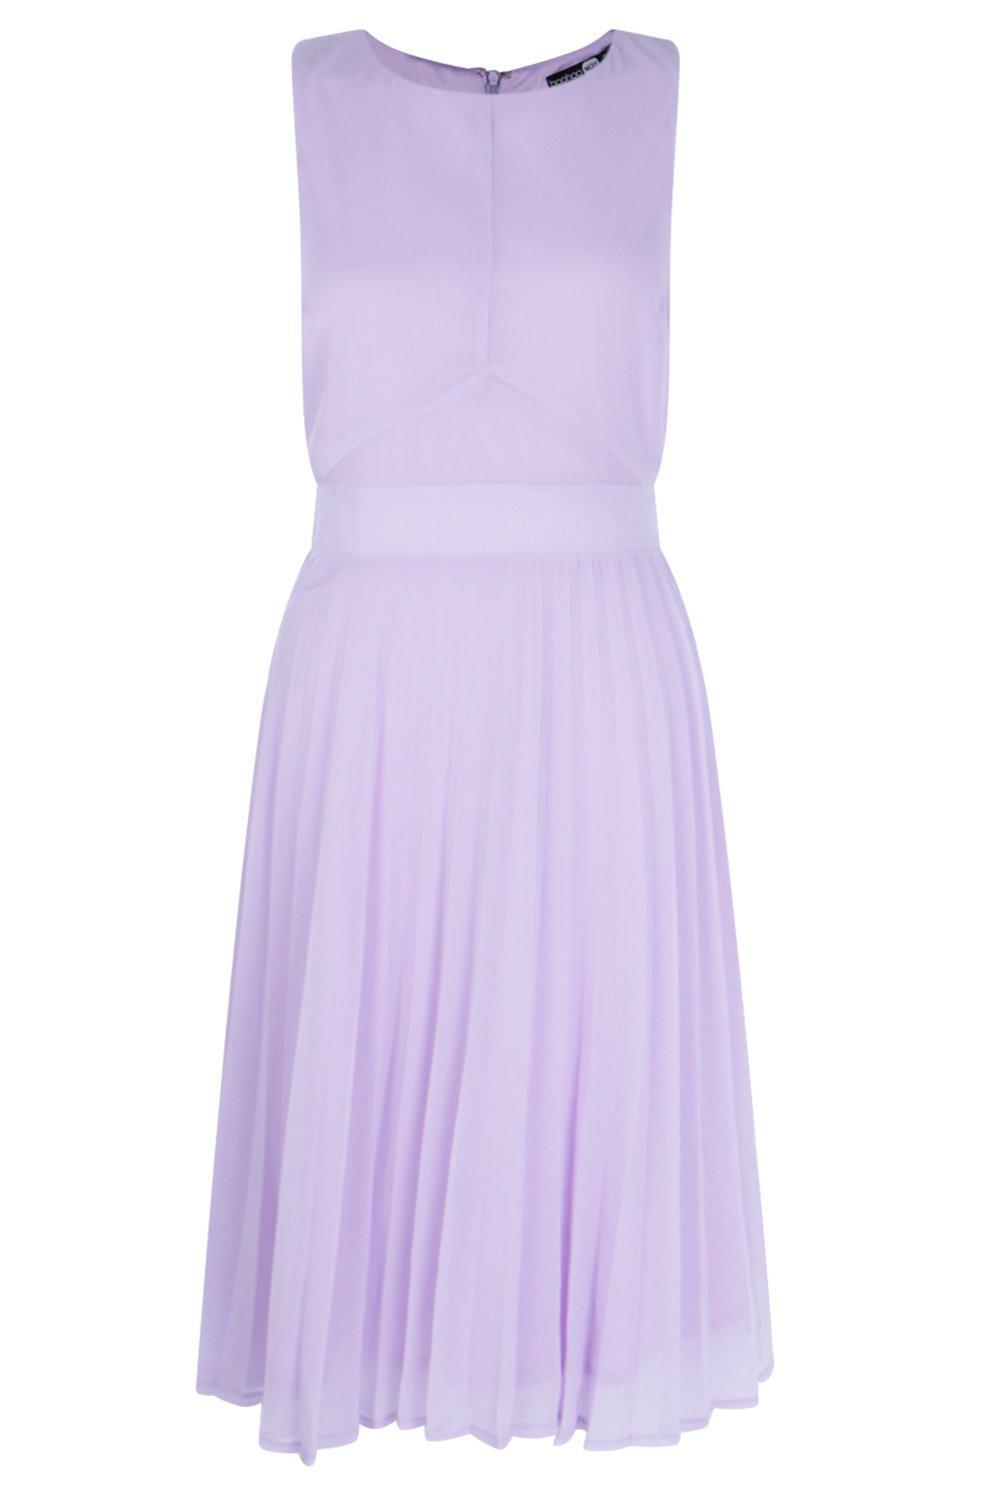 d9df4c6739 Lyst - Boohoo Chiffon Pleated Skirt Midi Skater Dress in Purple